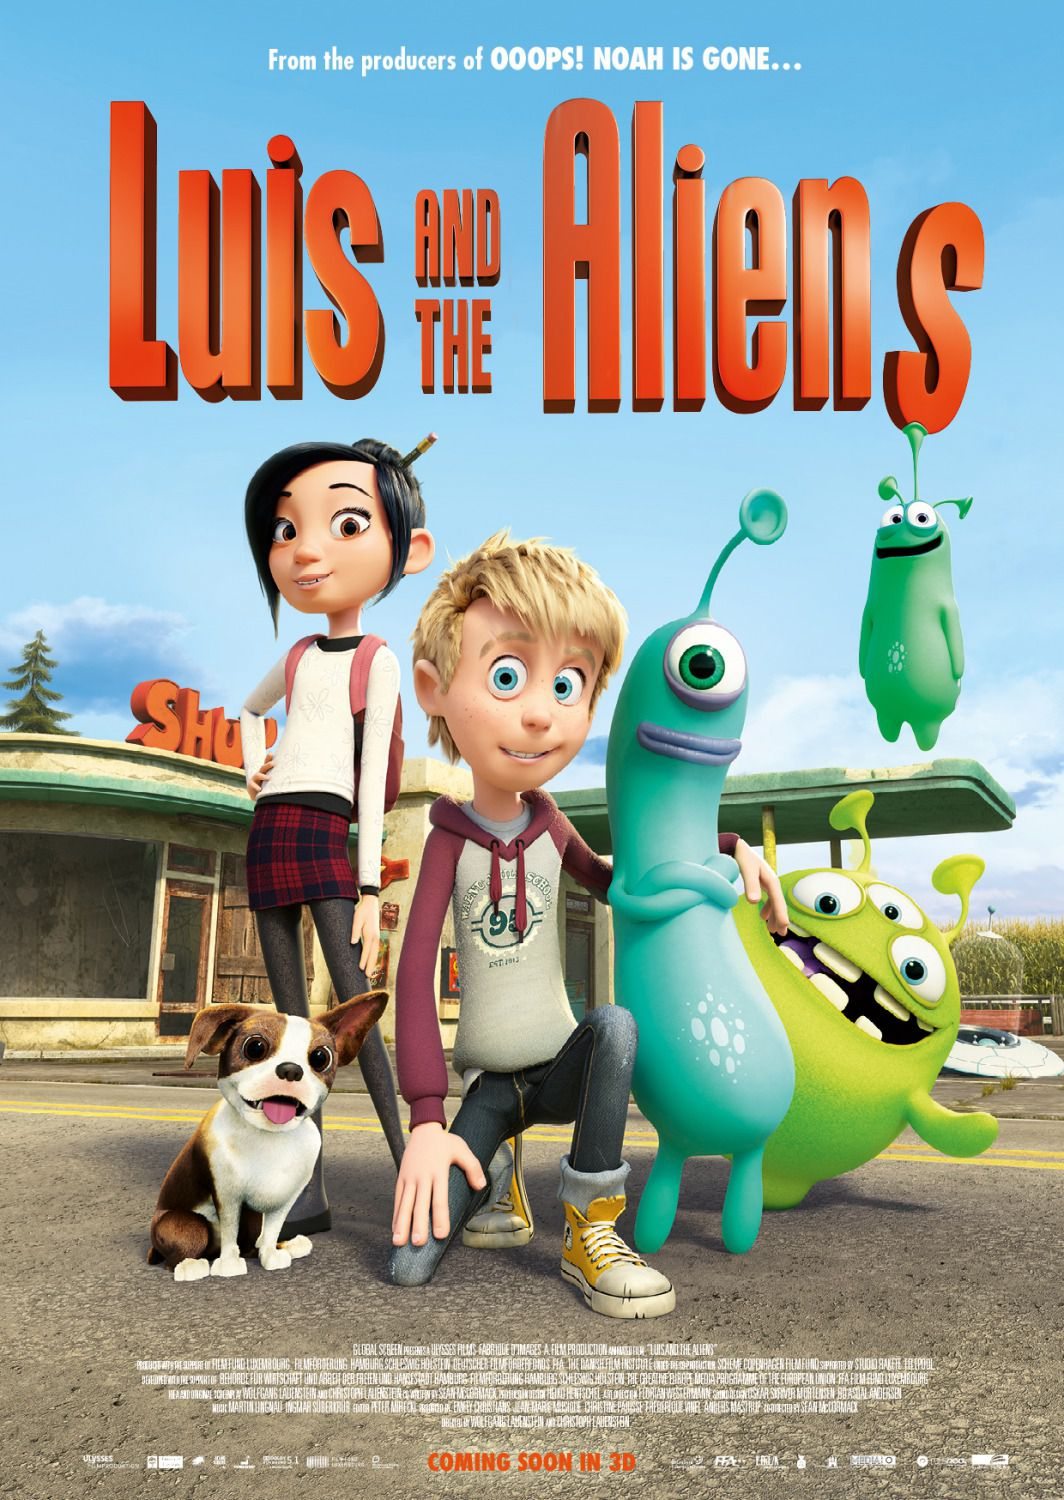 Luis and the Aliens - scifi animated cartoon film poster